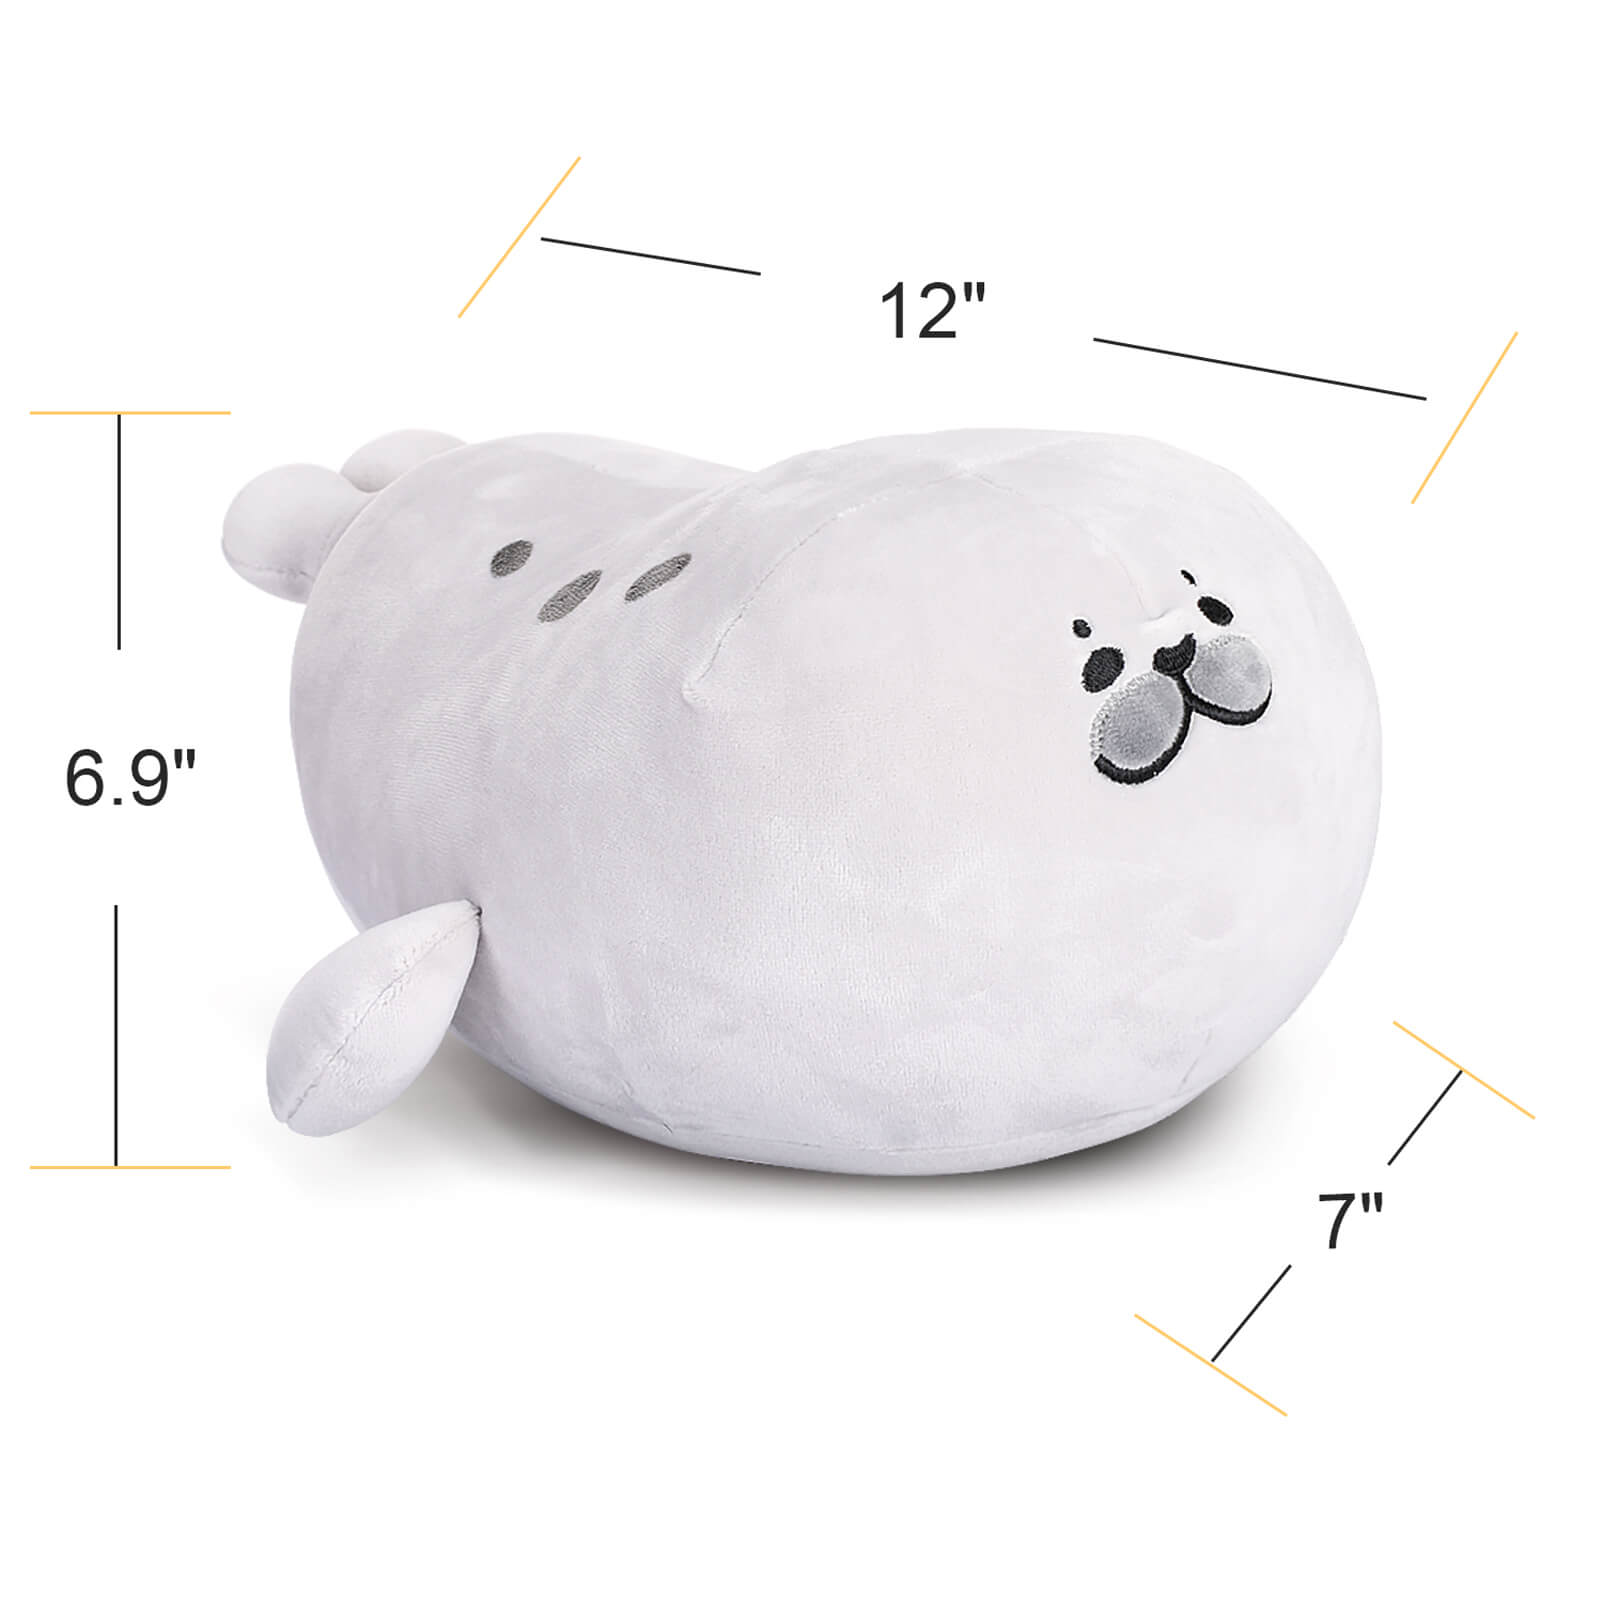 Fluffy Banana Pose Spotted Seal Plush Pillow Stuffed Plush Toys